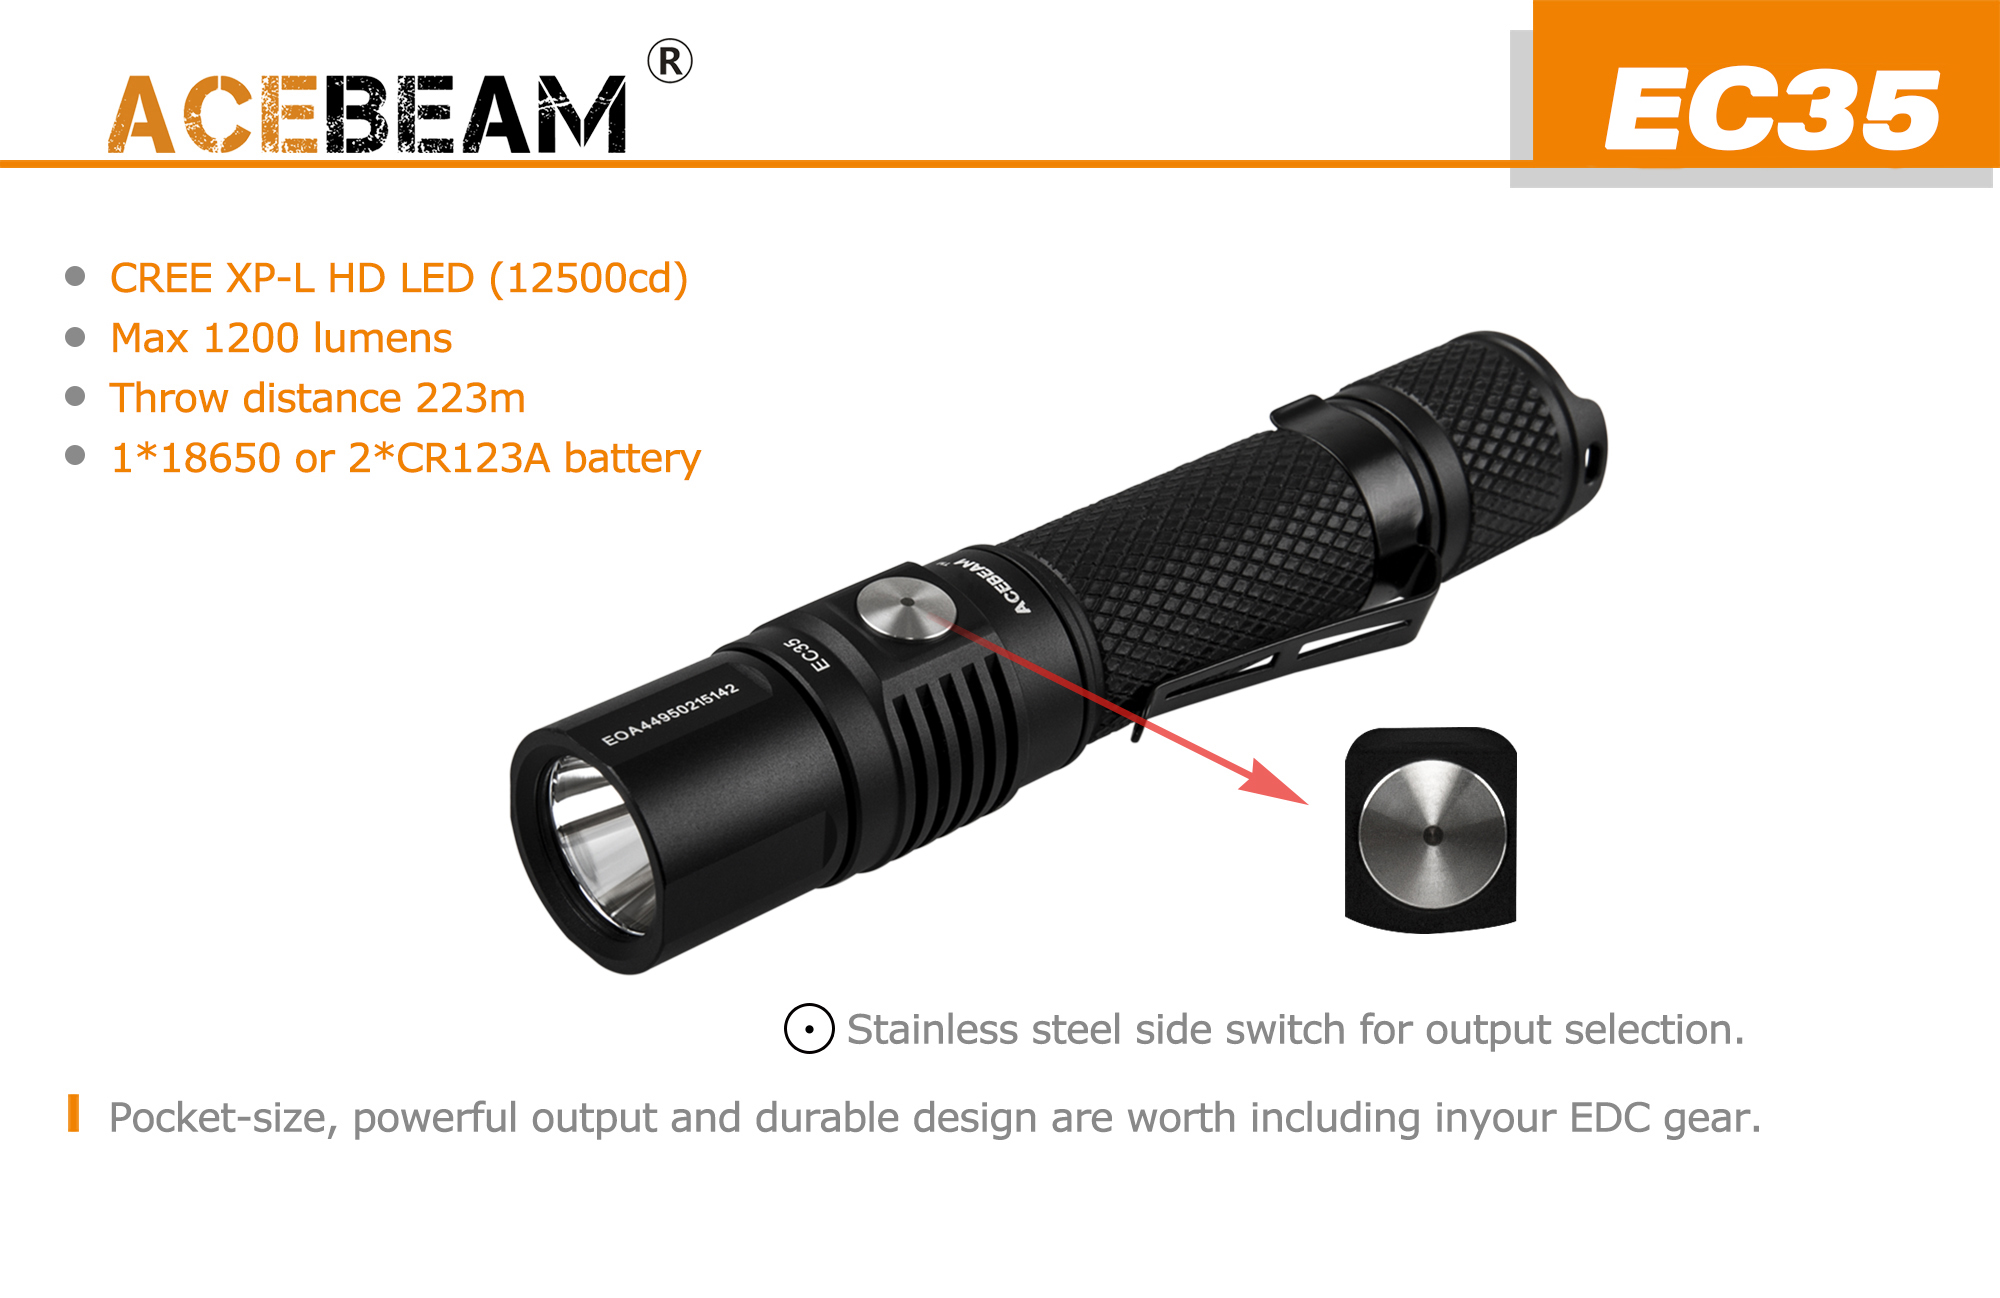 ACEBEAM EC35 TOP switch